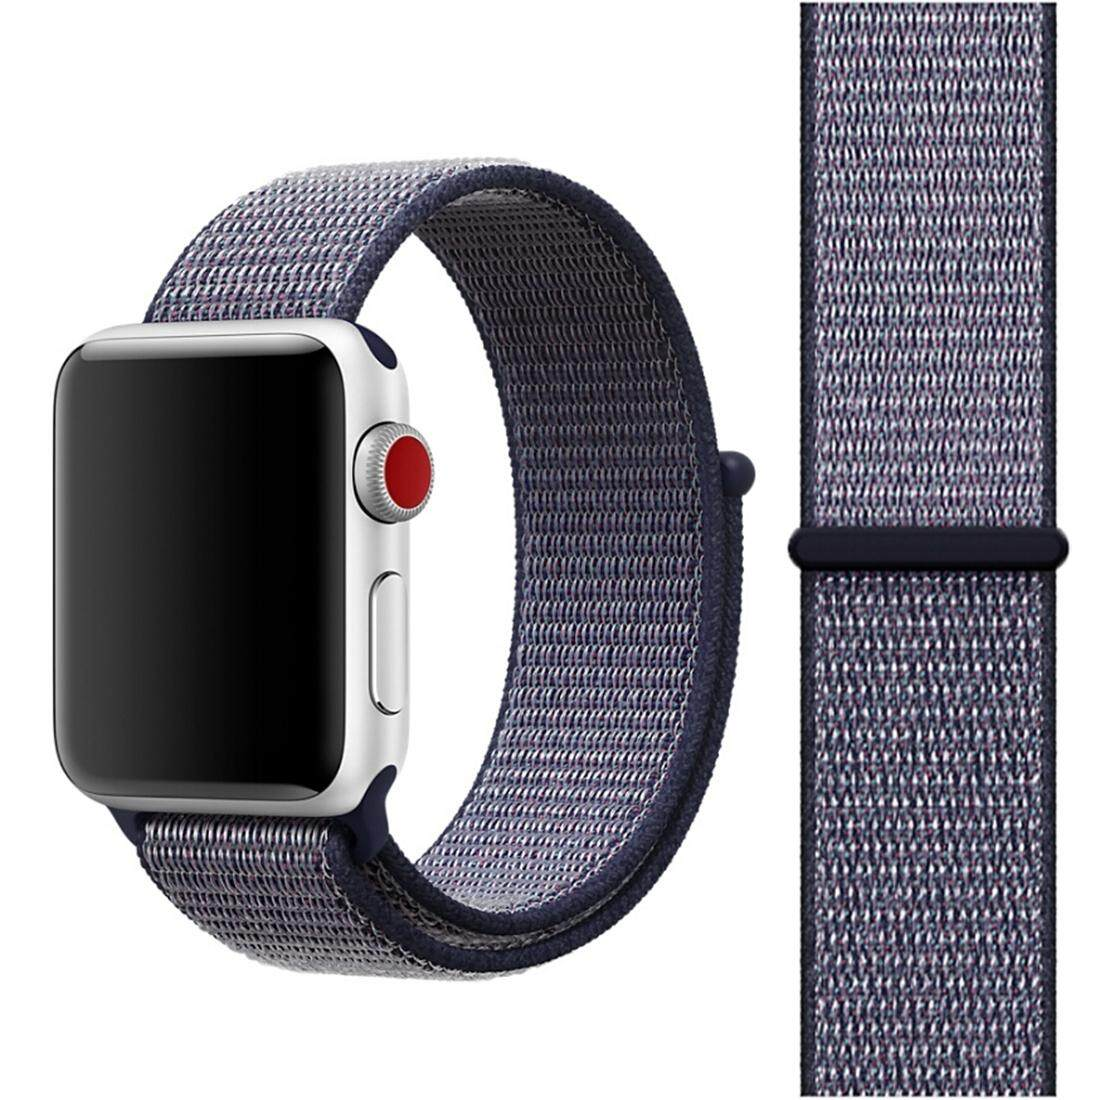 Buy Cheap For Apple Watch Series 3 And 2 And 1 42Mm Simple Fashion Nylon Watch Strap With Magic Stick Navy Blue Intl